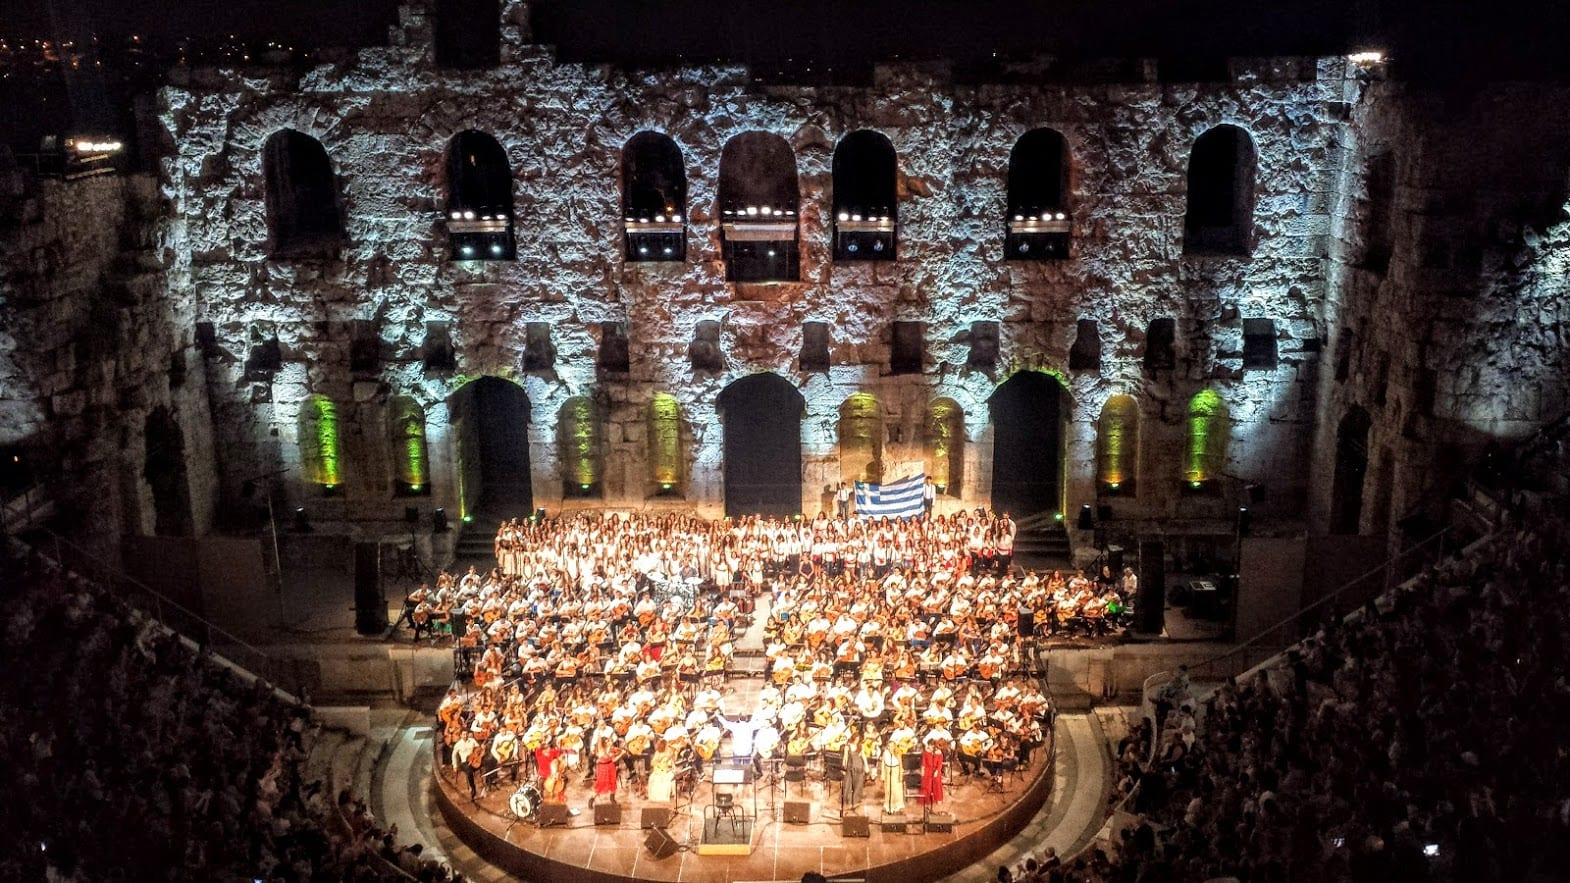 The Athens and Epidaurus festival has live performances in the Herodion